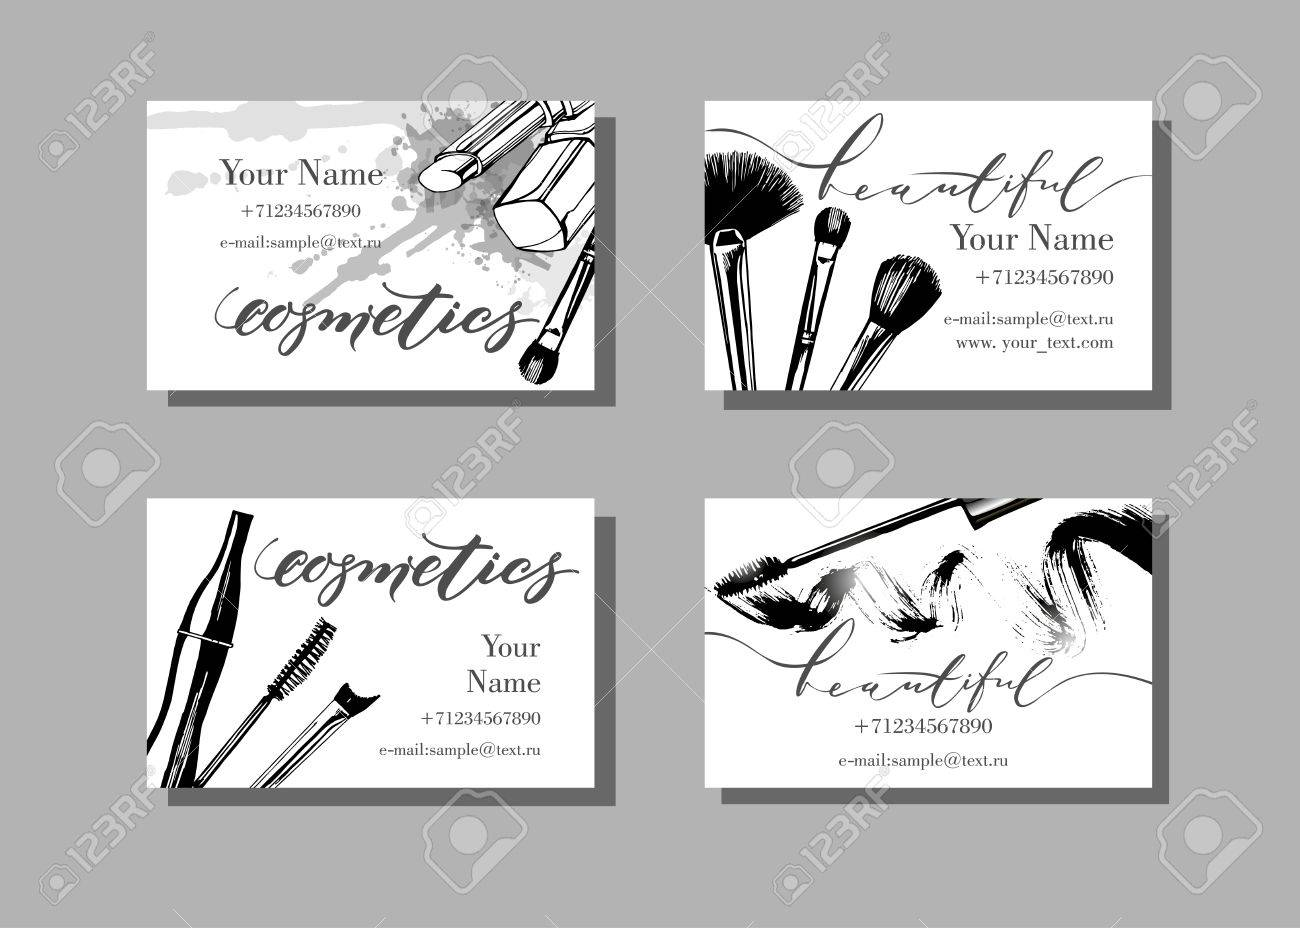 Makeup Artist Business Card. Vector Template With Makeup Items ...